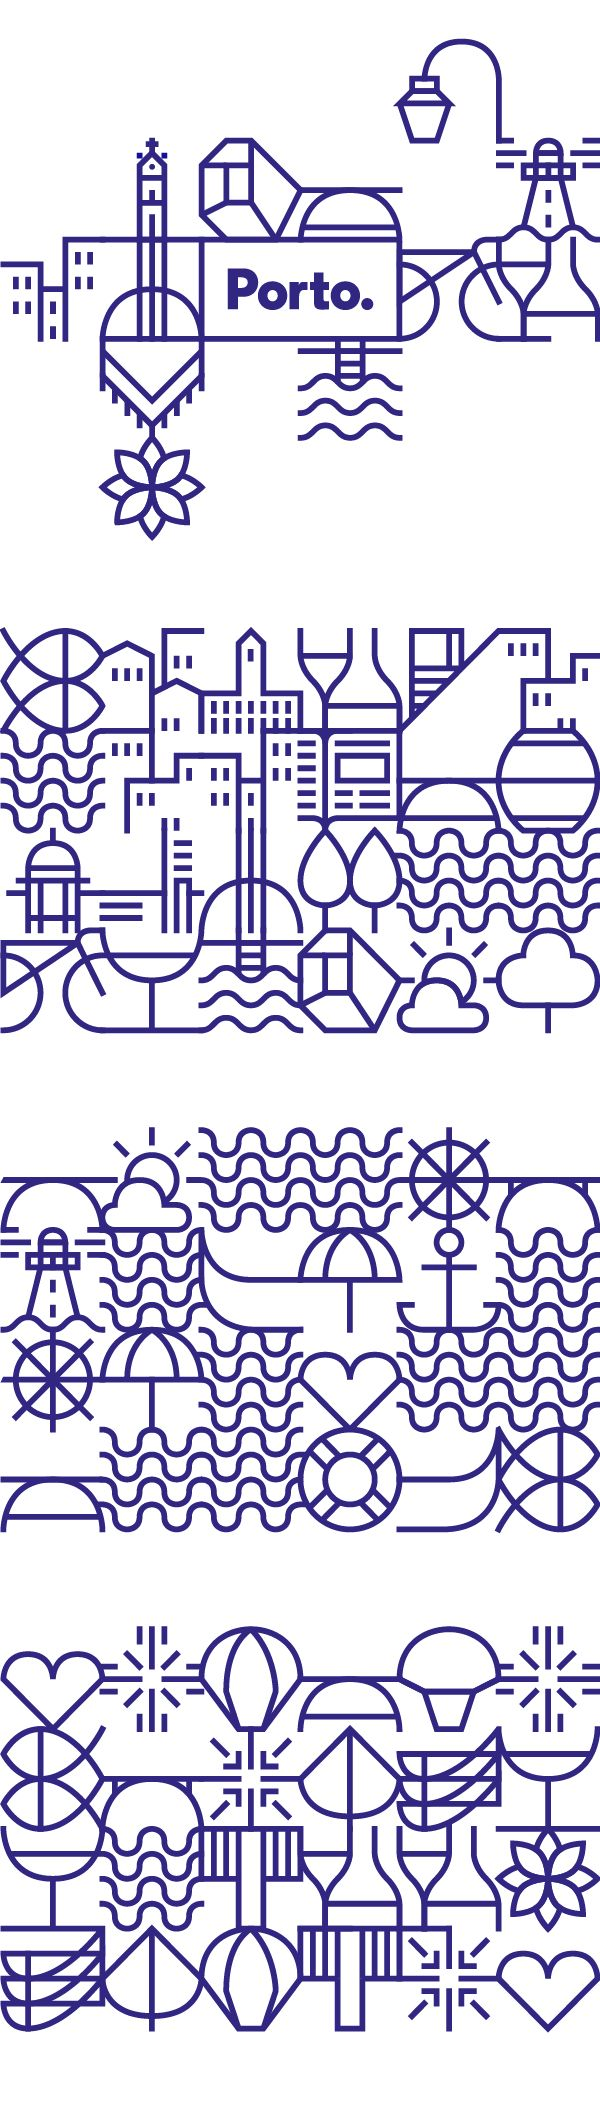 I'm such a sucker for this whole pattern recombination thing. White Studio nailed it for the city of Porto.